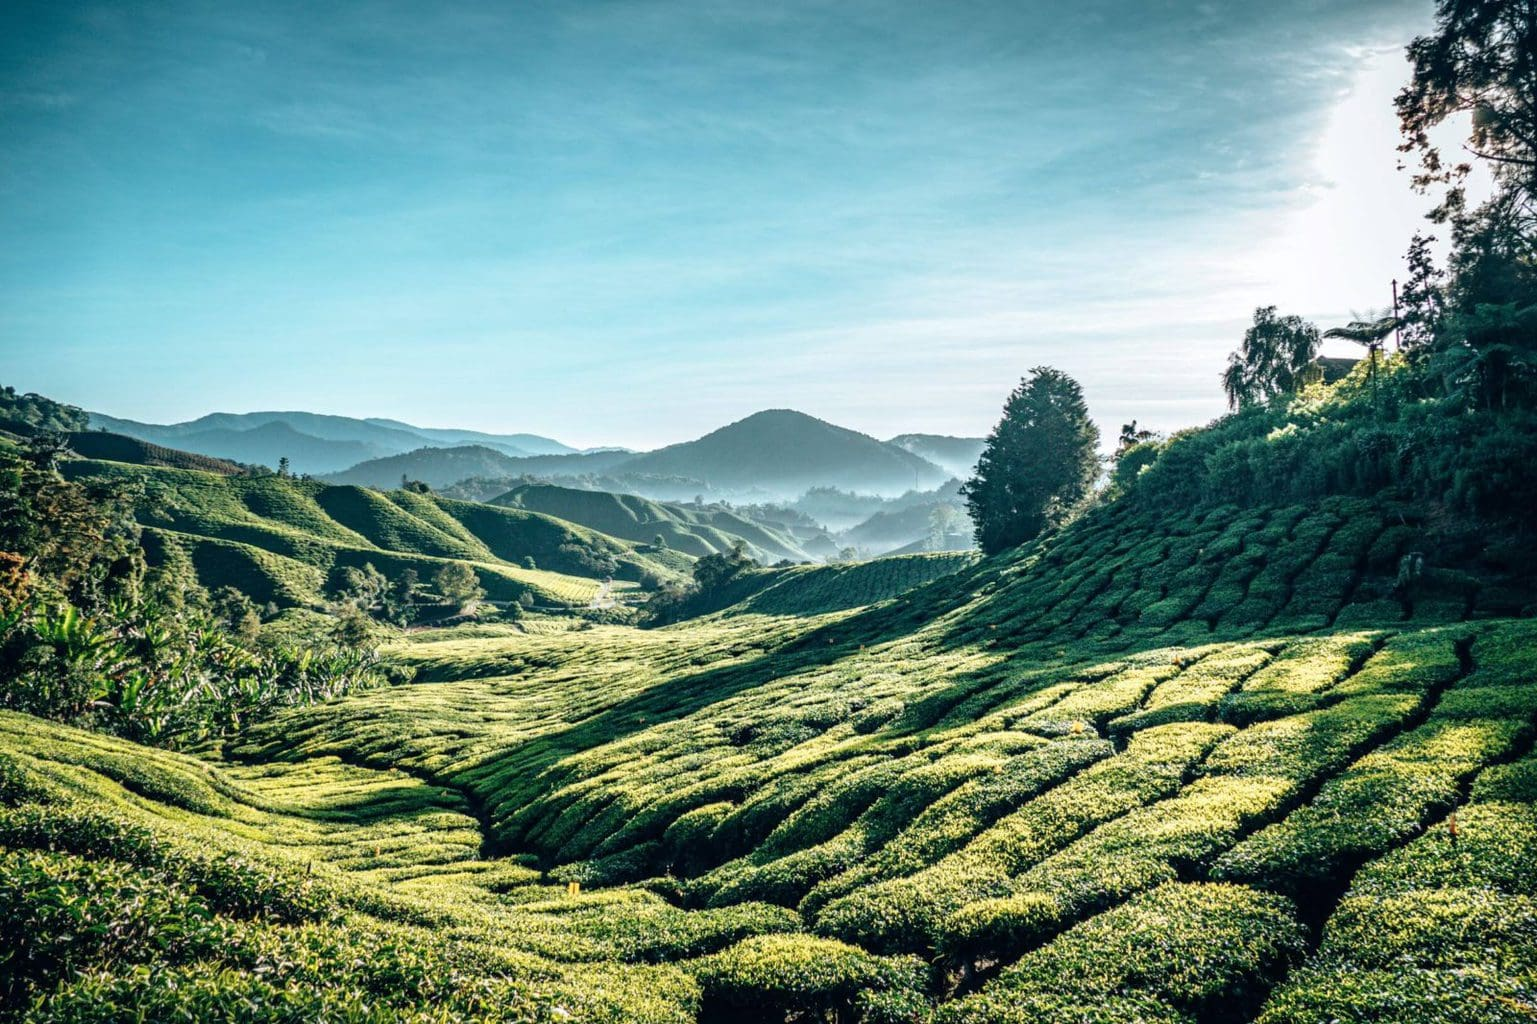 Cameron Highlands BOH tea plantation